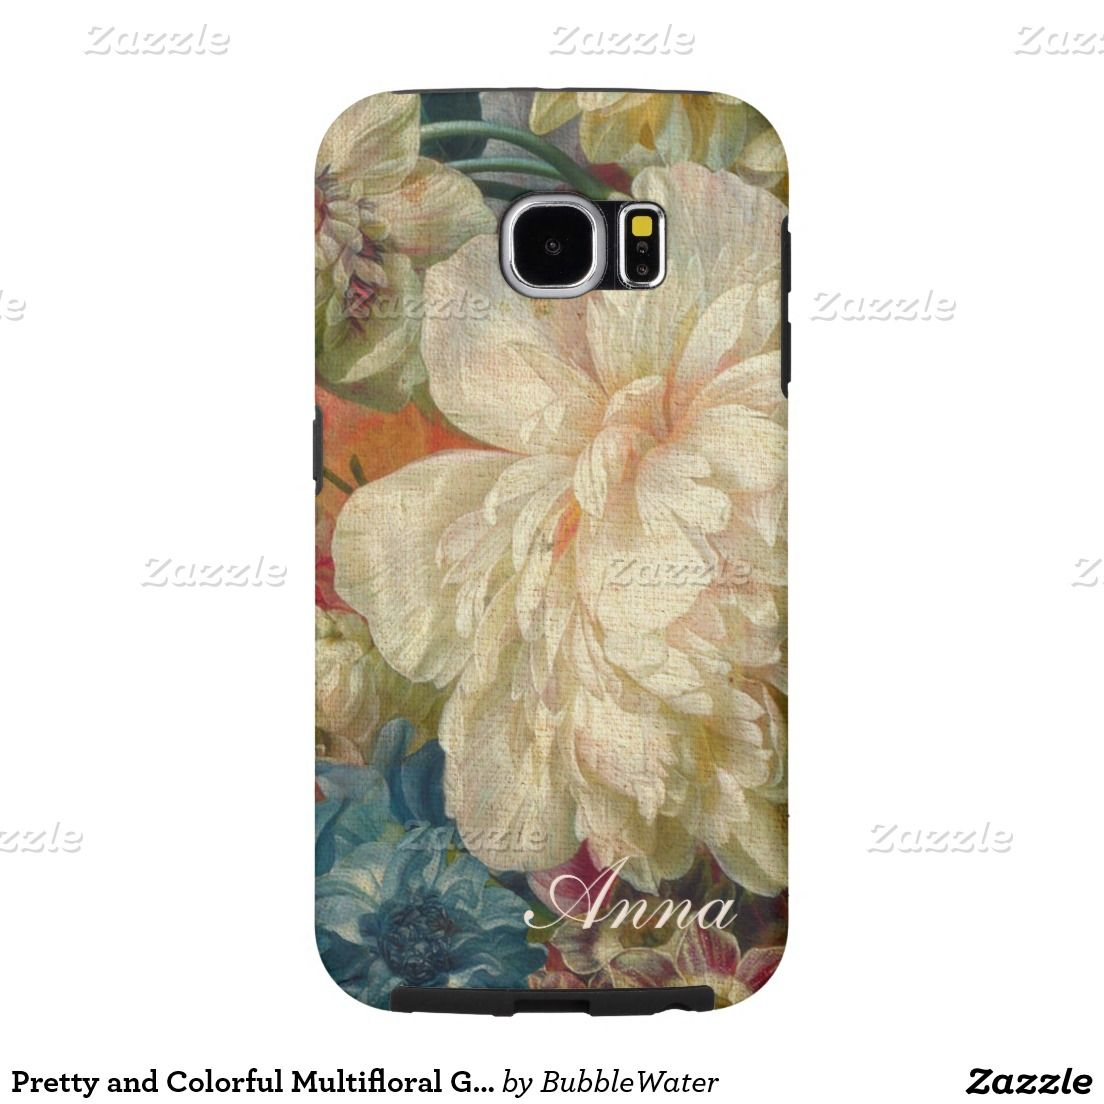 Pretty and Colorful Multifloral Galaxy S6 Case Samsung Galaxy S6 Cases